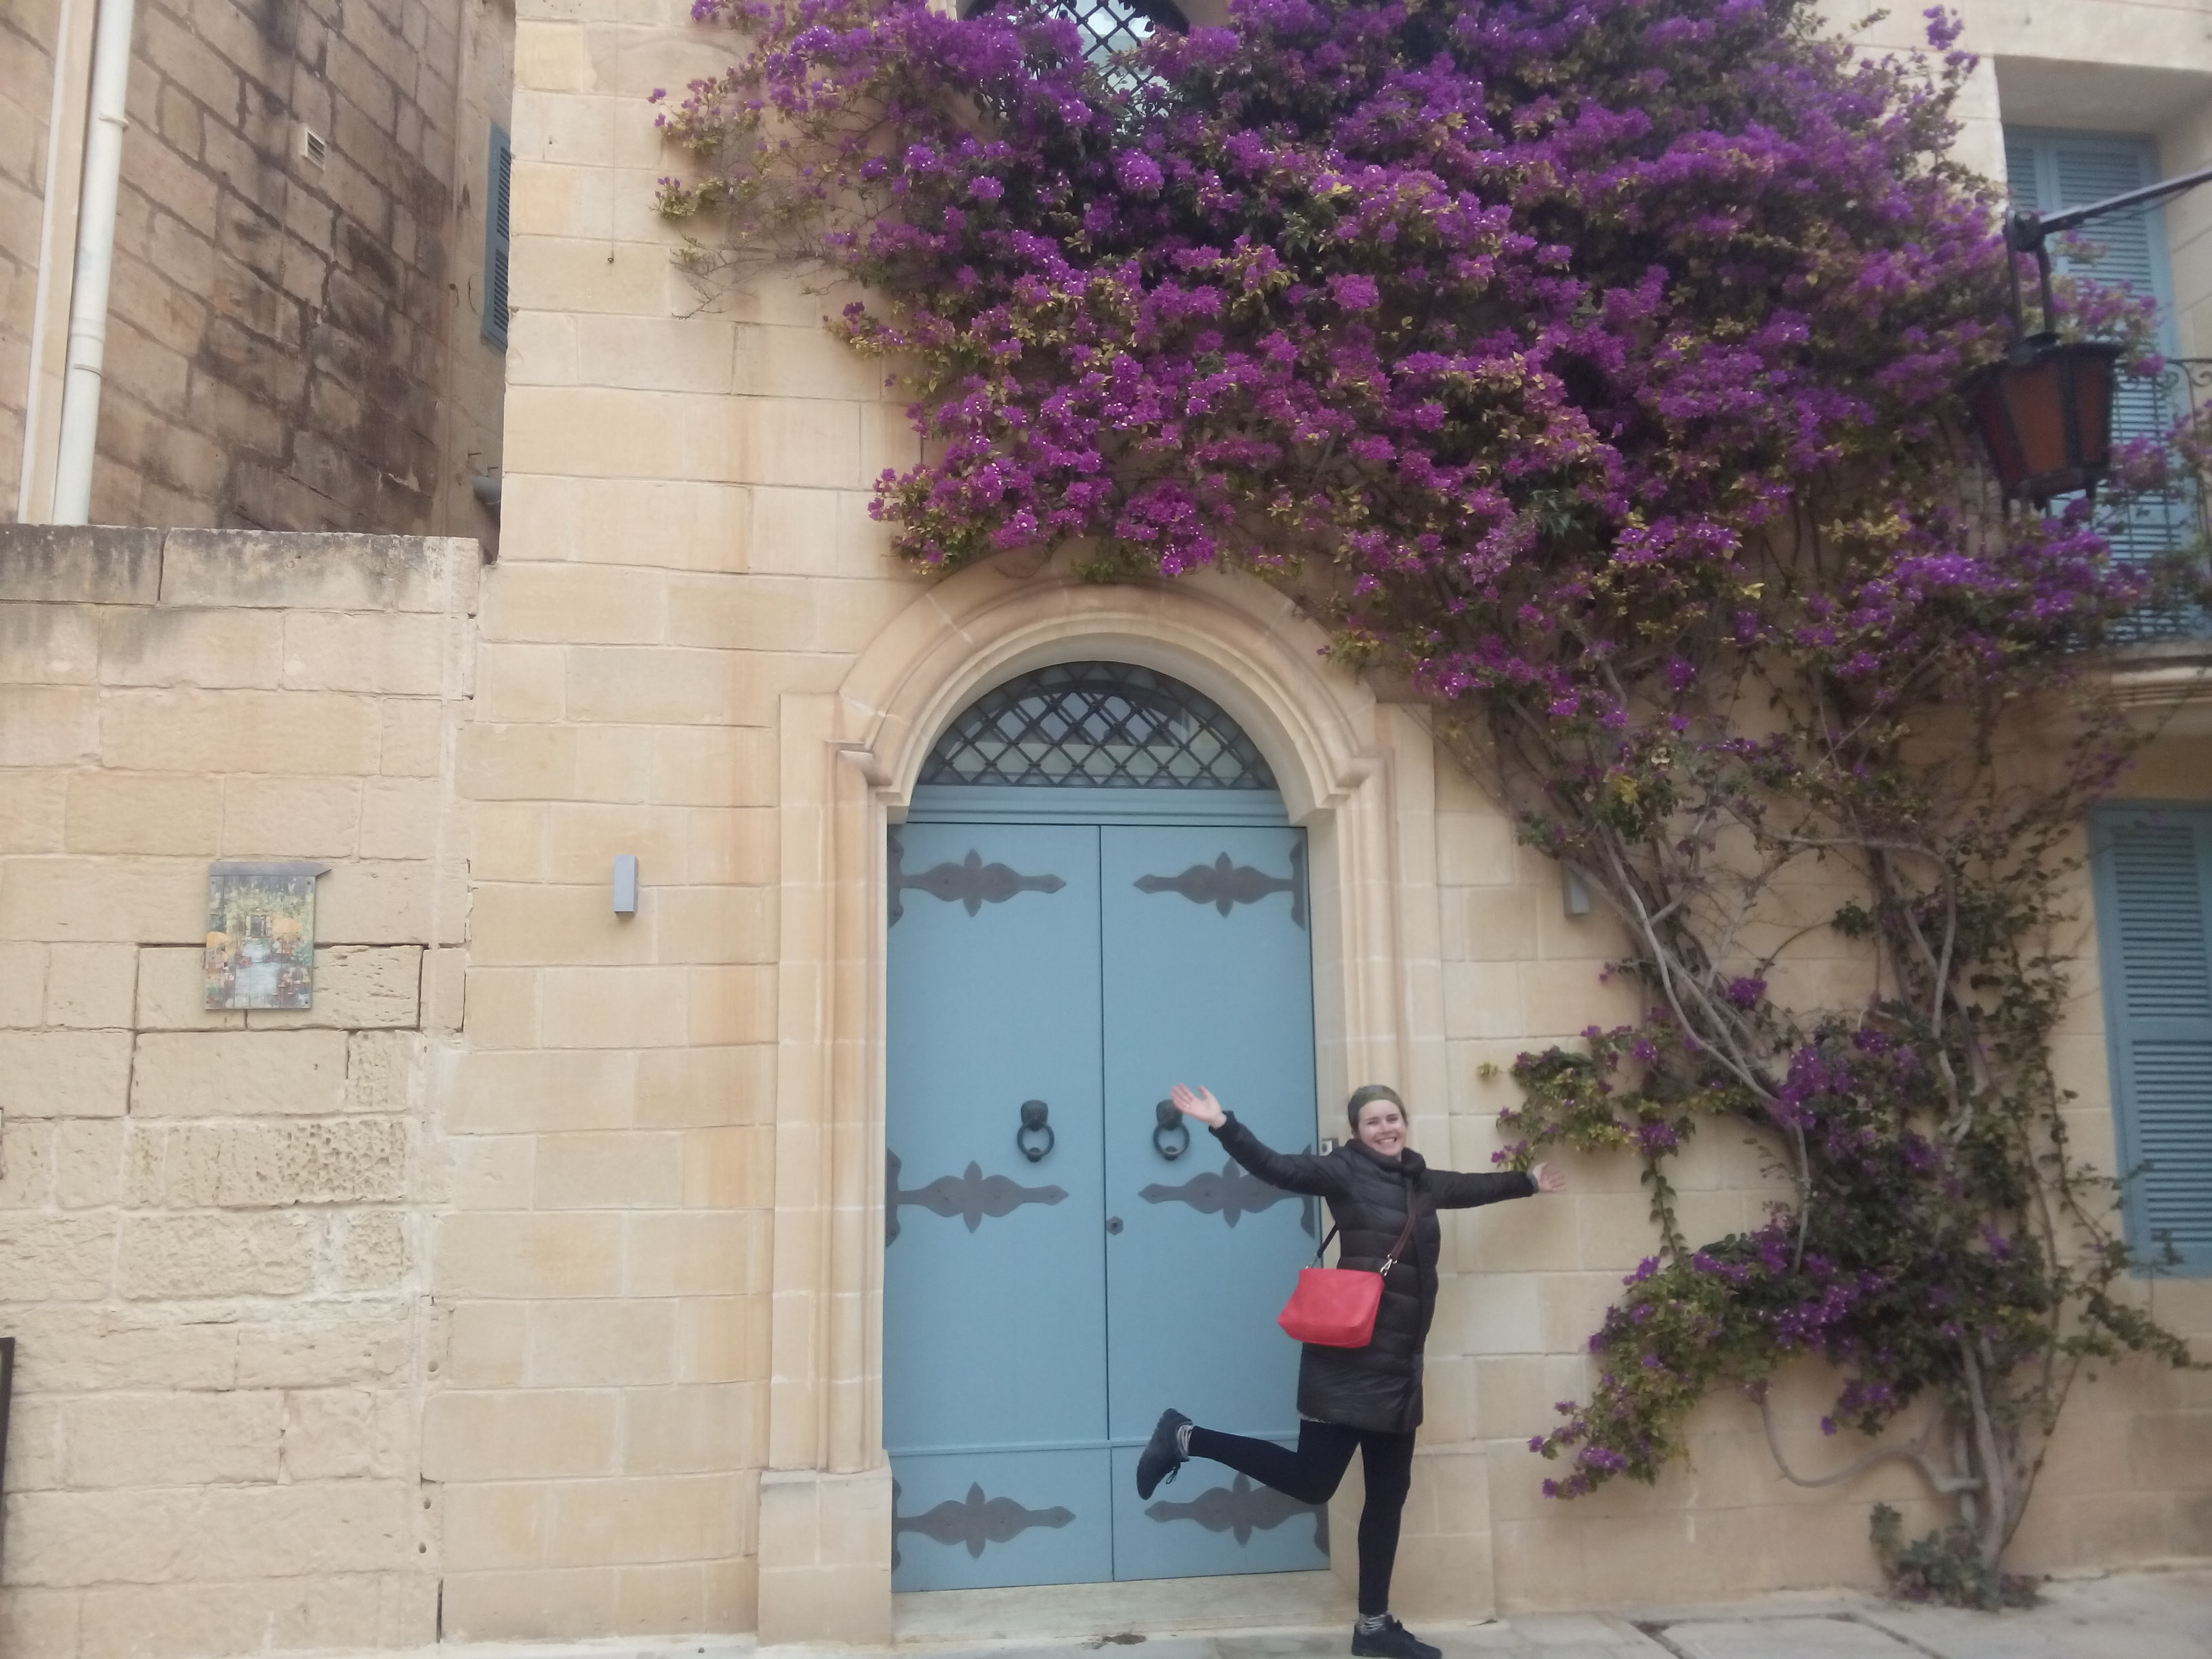 A woman in a black jacket with a red purse dances in front of a blue doorway, sandstone wall, with overhanging pink flowers